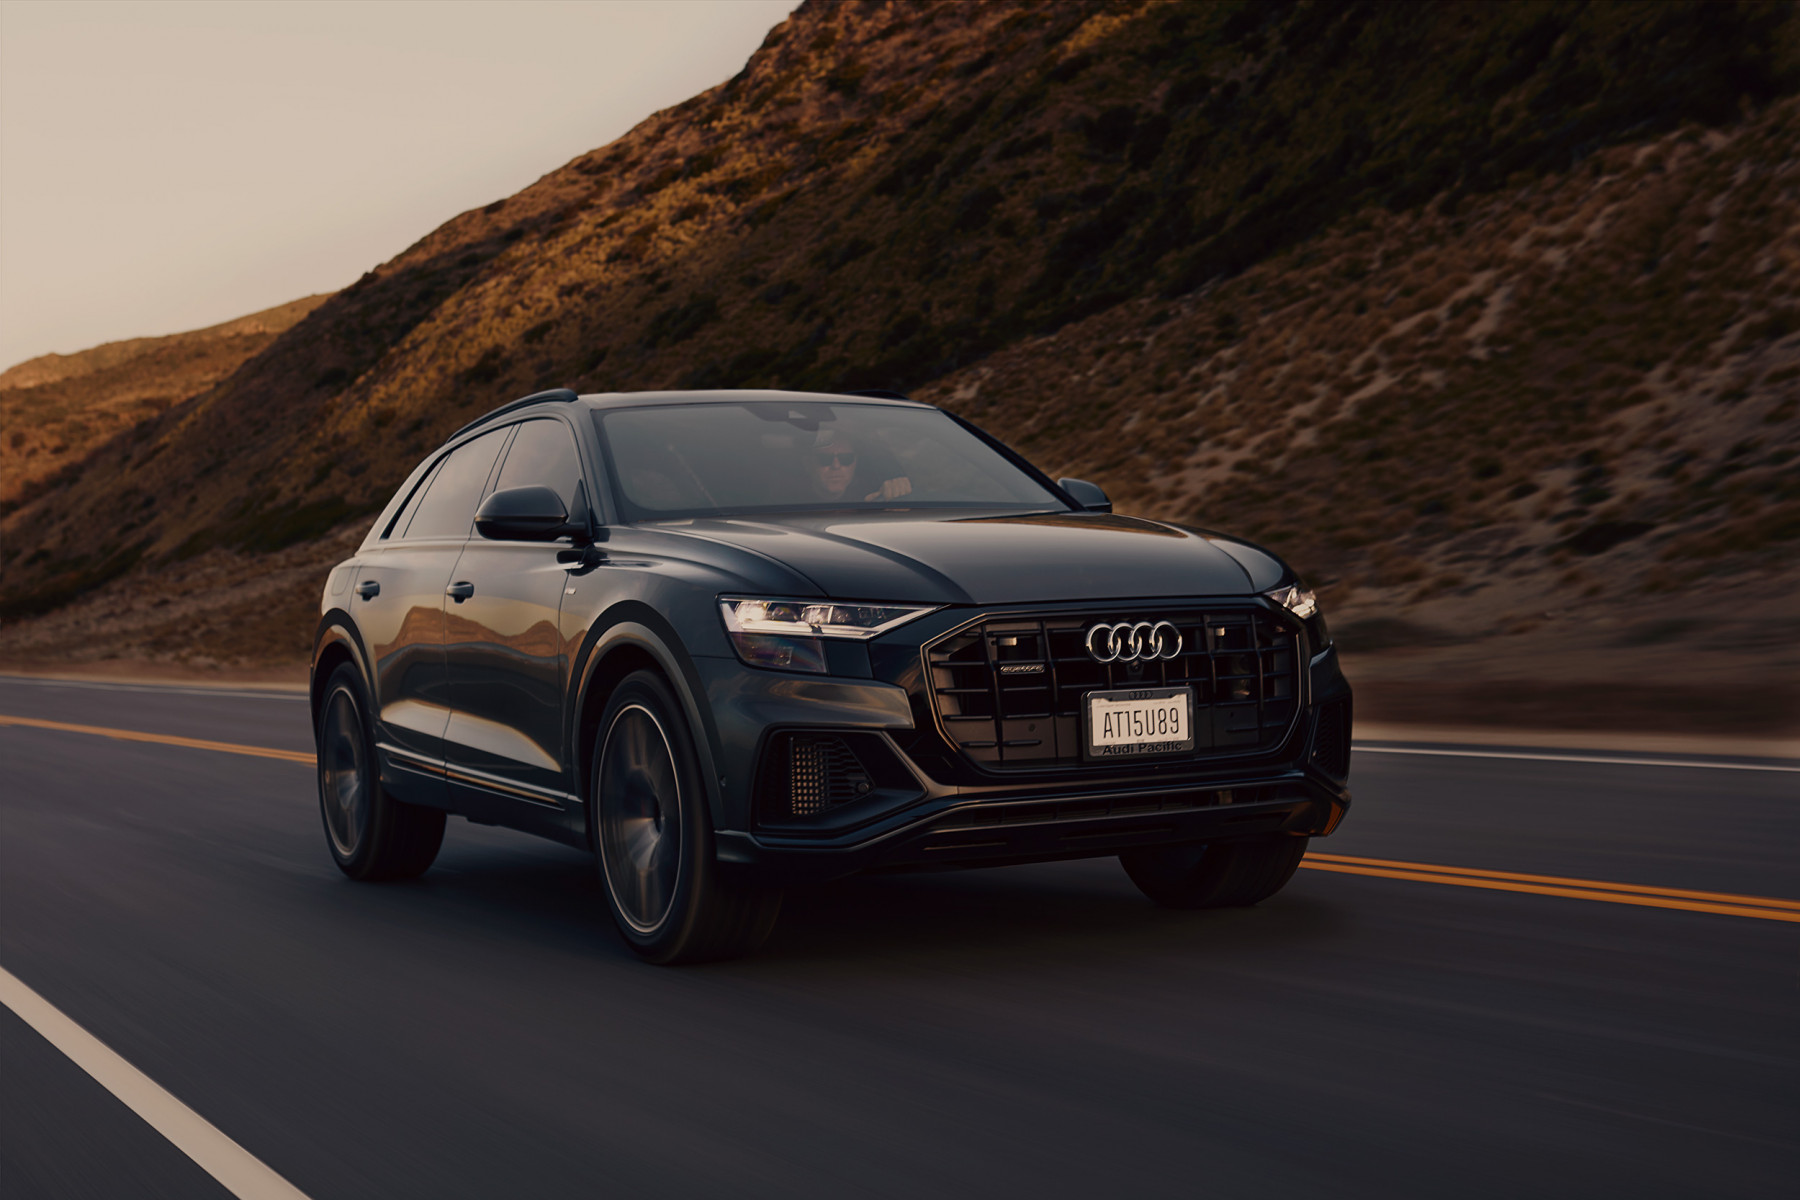 New Audi Q8 Point Mugu